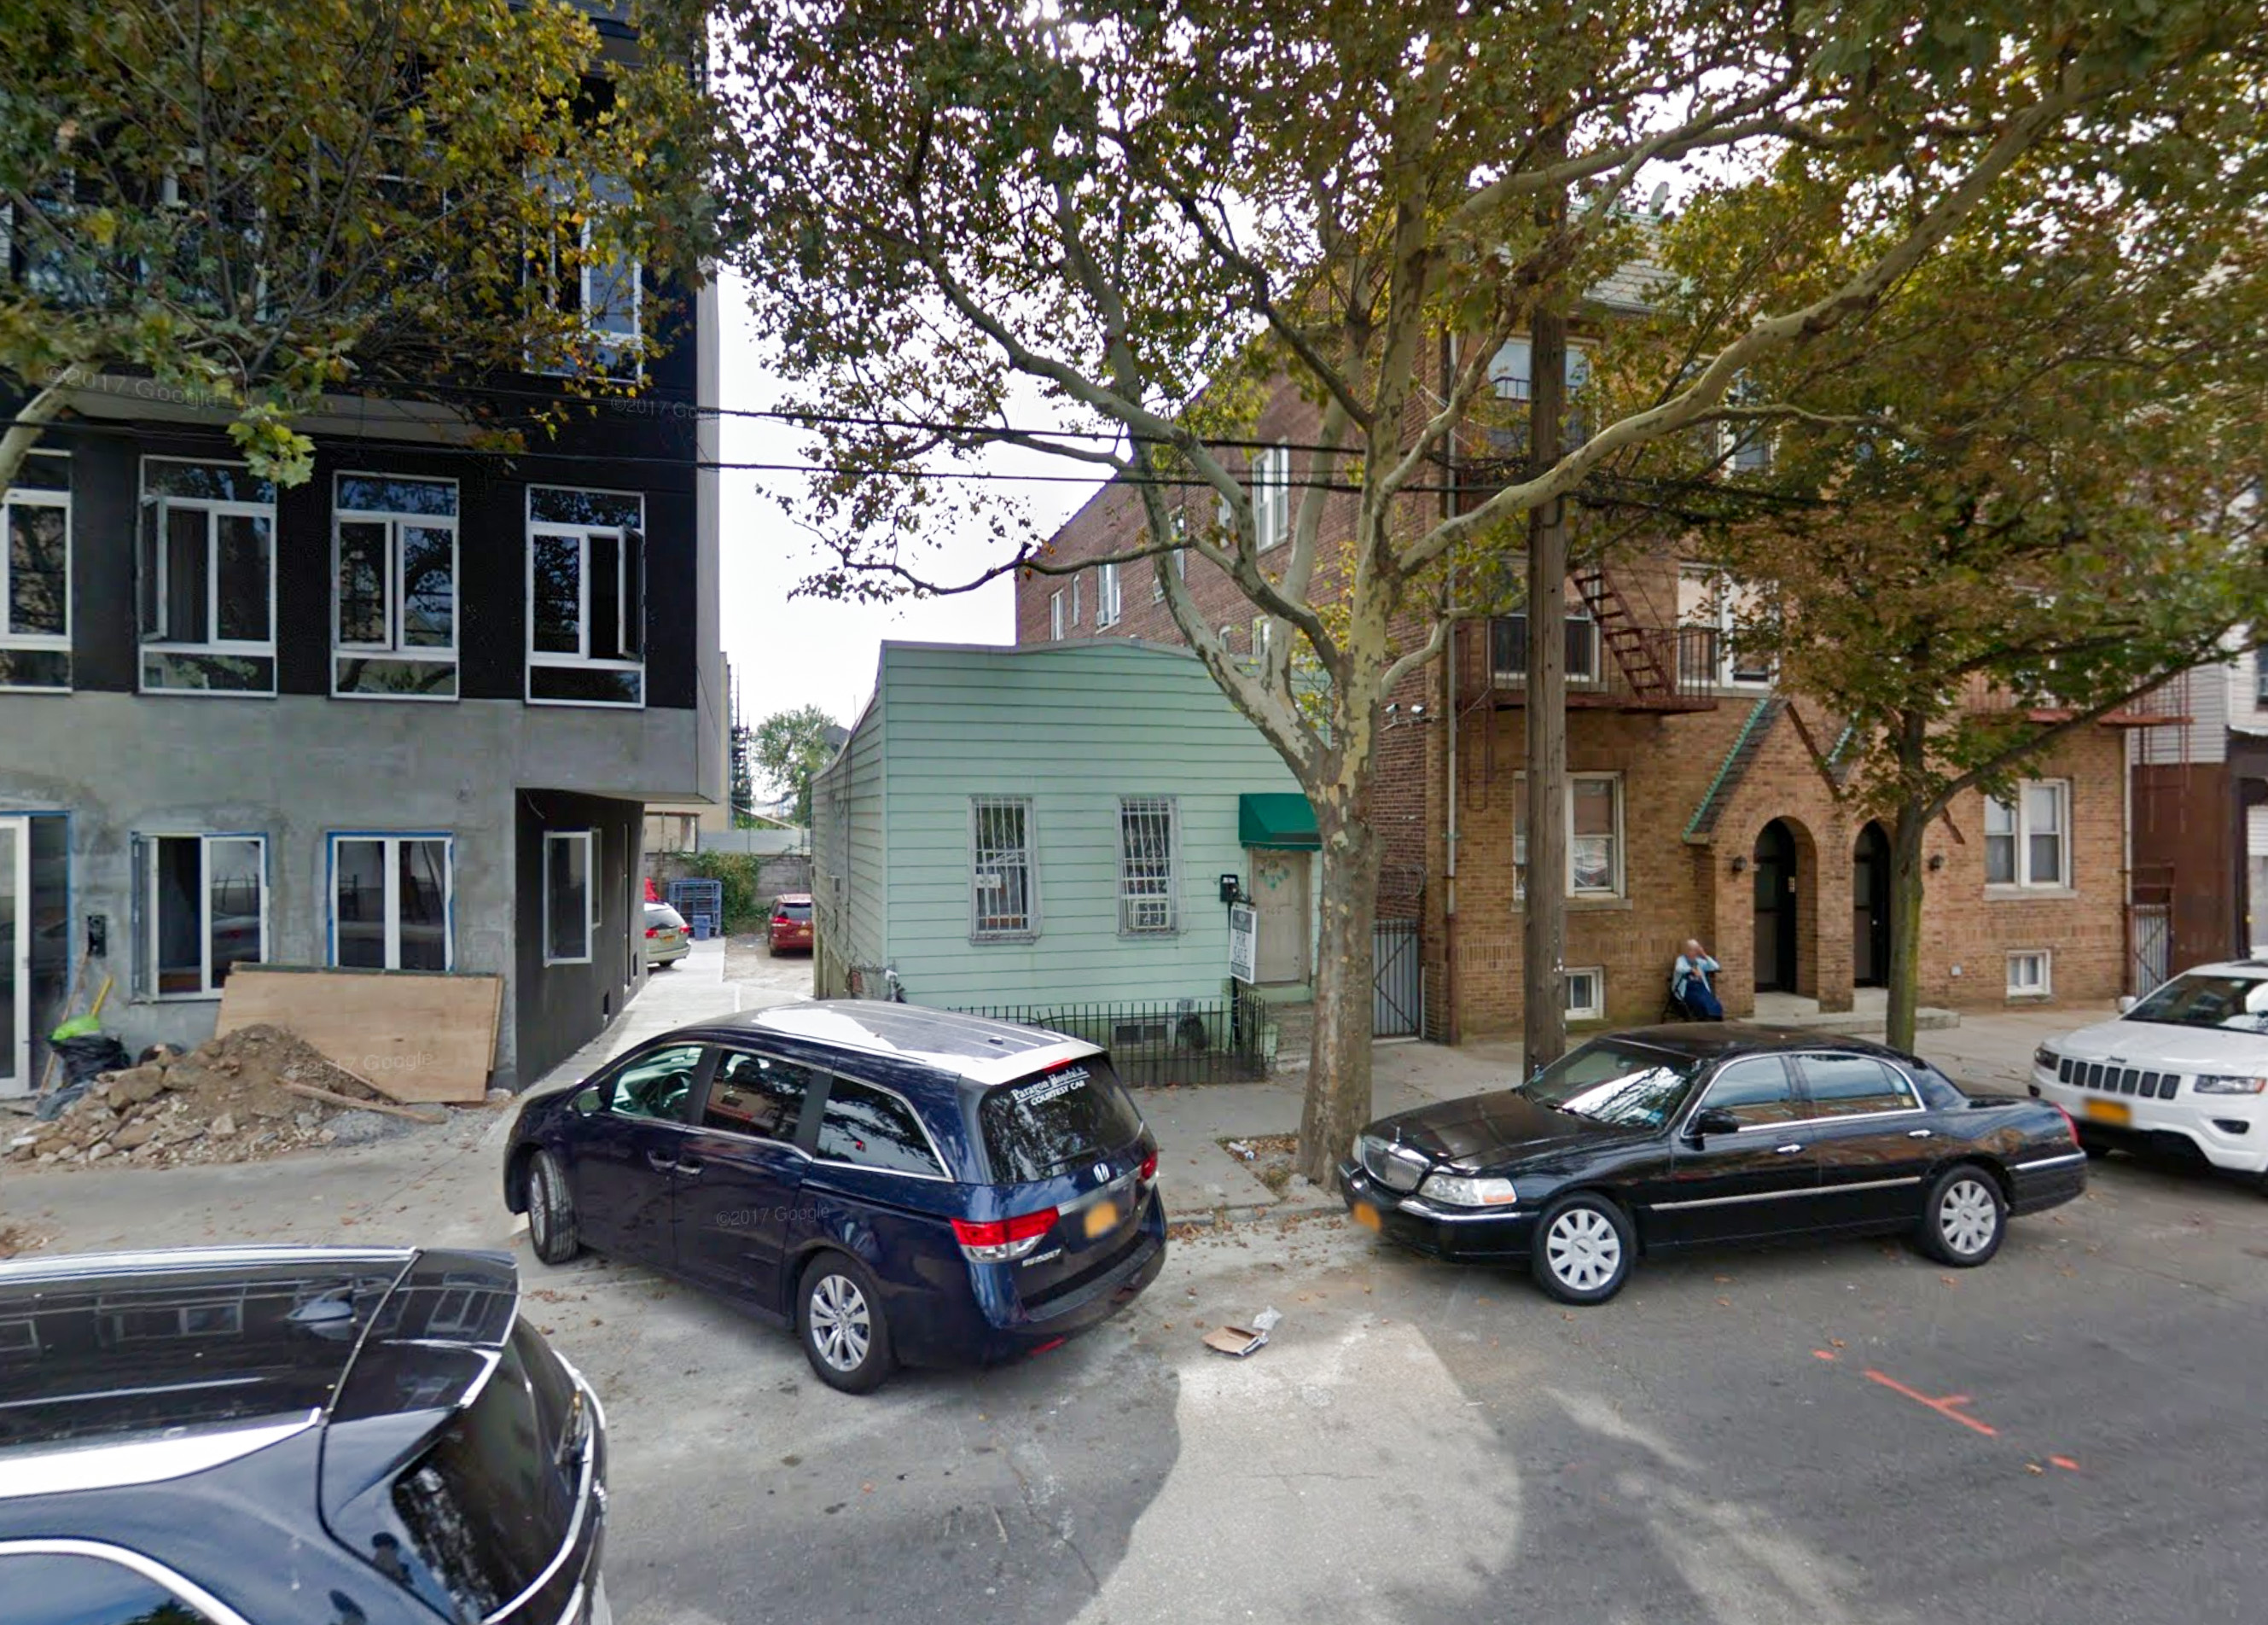 460 Seneca Avenue, via Google Maps